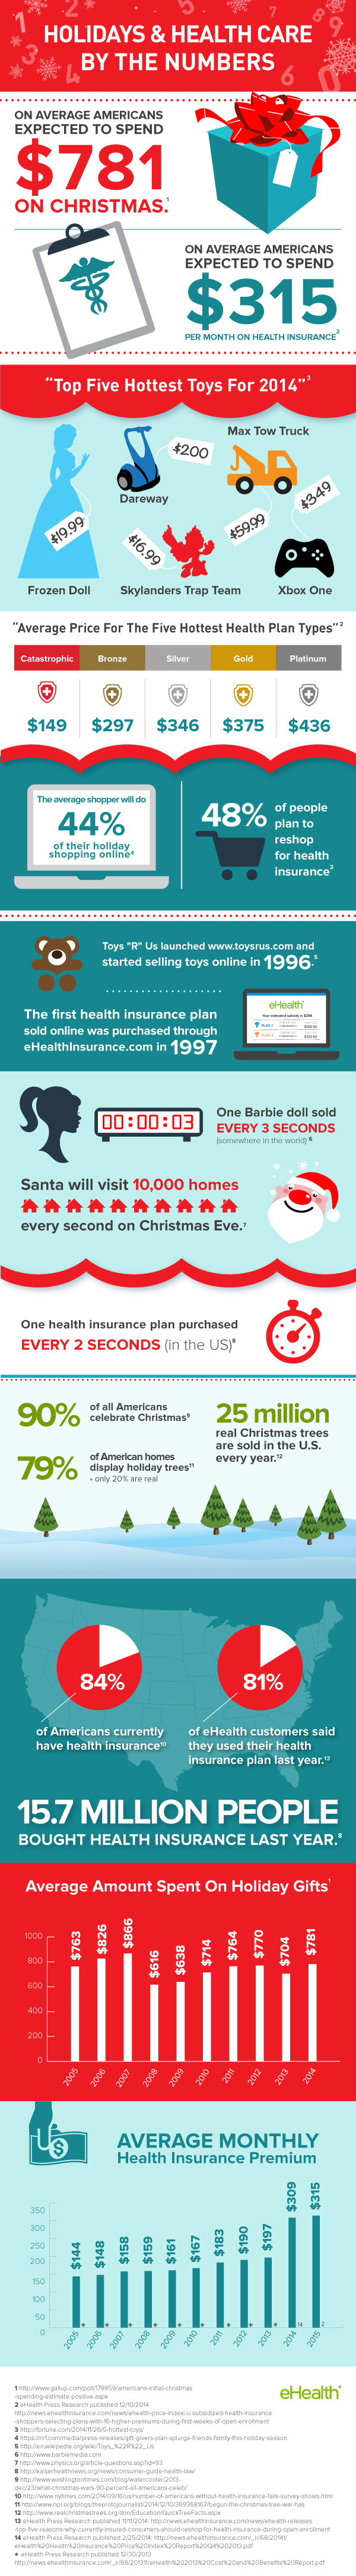 Holidays and Health Care by the Numbers